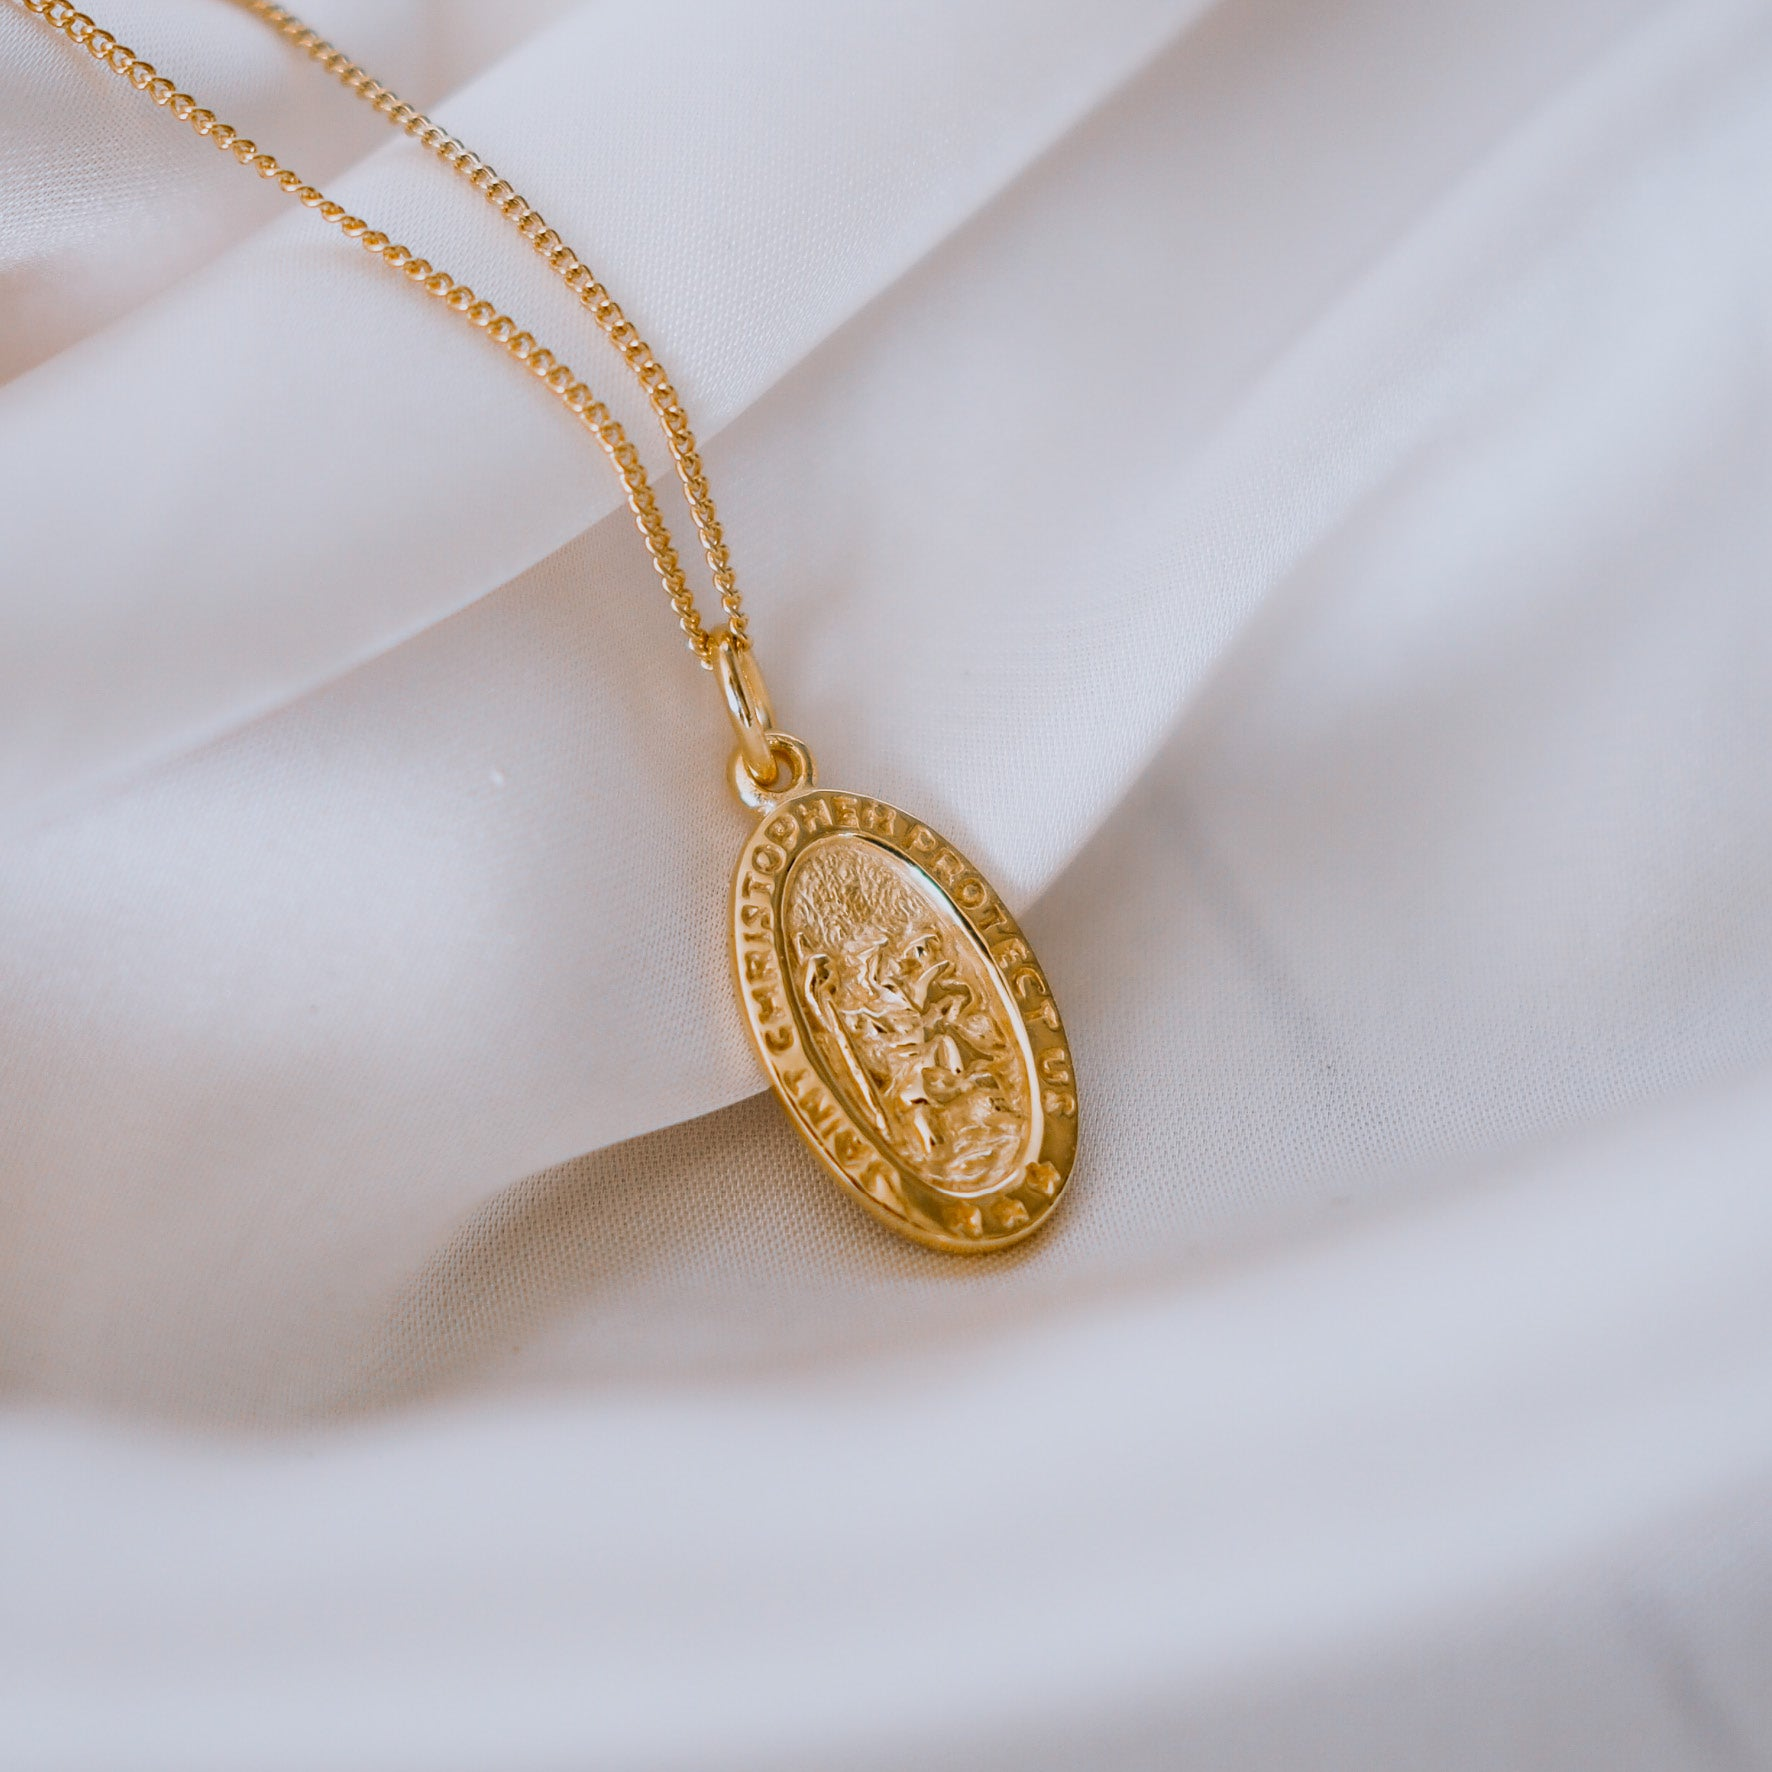 SOLID GOLD - St Christopher the Patron of Travel Charm Necklace